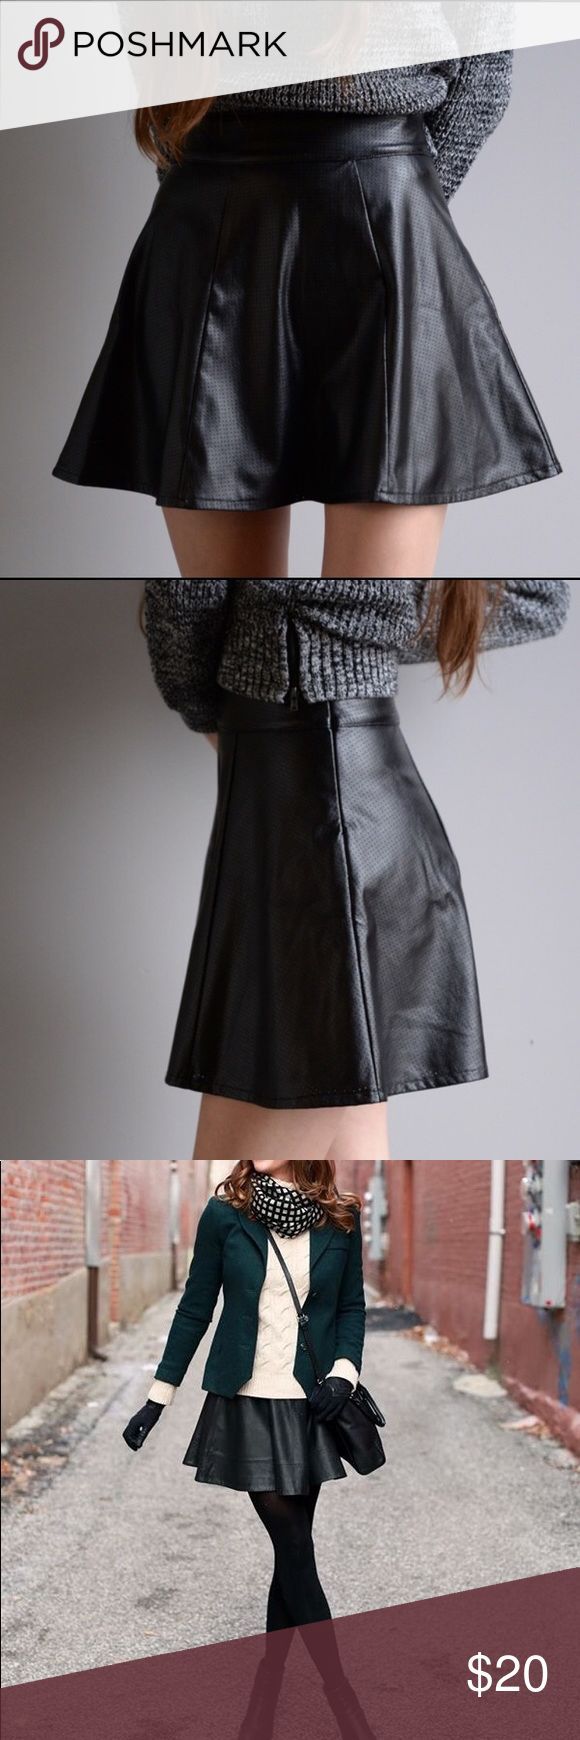 Leather Skater Skirt Super cute a-line faux leather skirt. Perfect for a night out or pair it with black tights,  a cardi & boots on a cold day. Very versatile. Features tiny perforated holes for a nice touch of character.  In perfect condition.  Size is XS/2 Nordstrom Skirts Circle & Skater